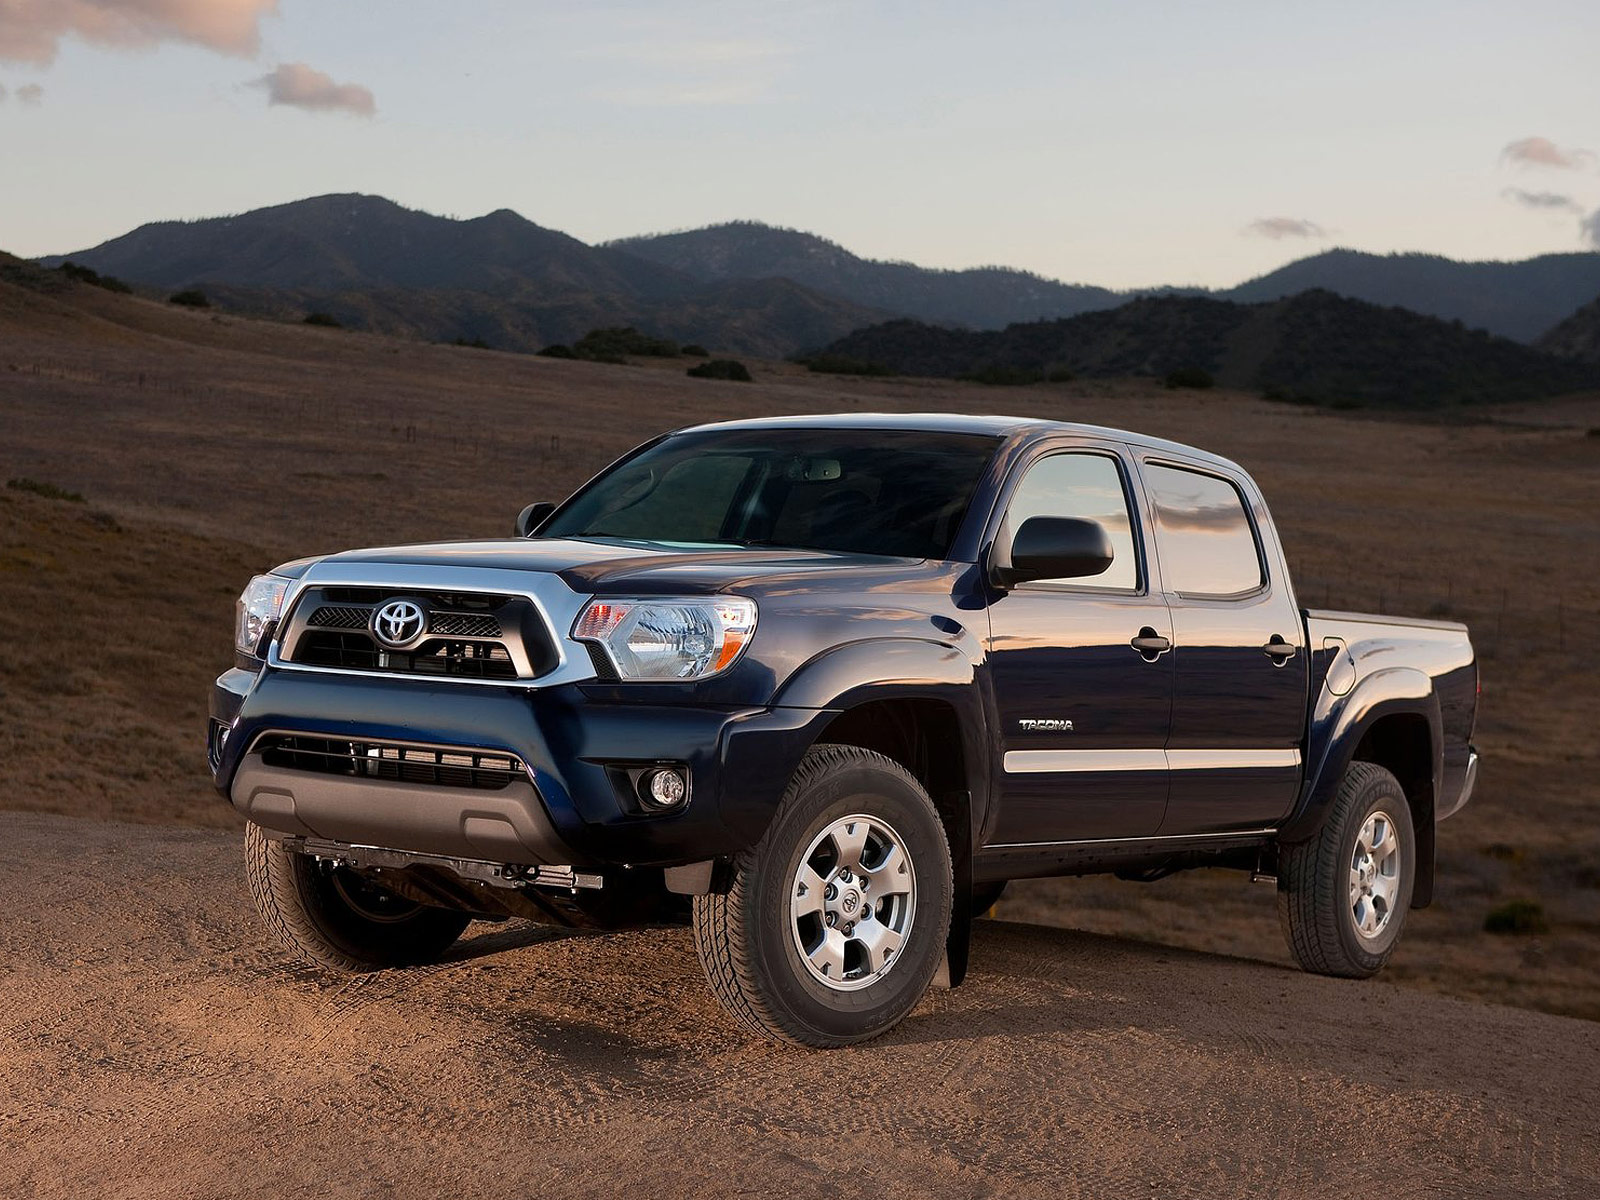 2012 TOYOTA Tacoma car accident lawyers Wallpaper Wallpaper Desktop 1600x1200